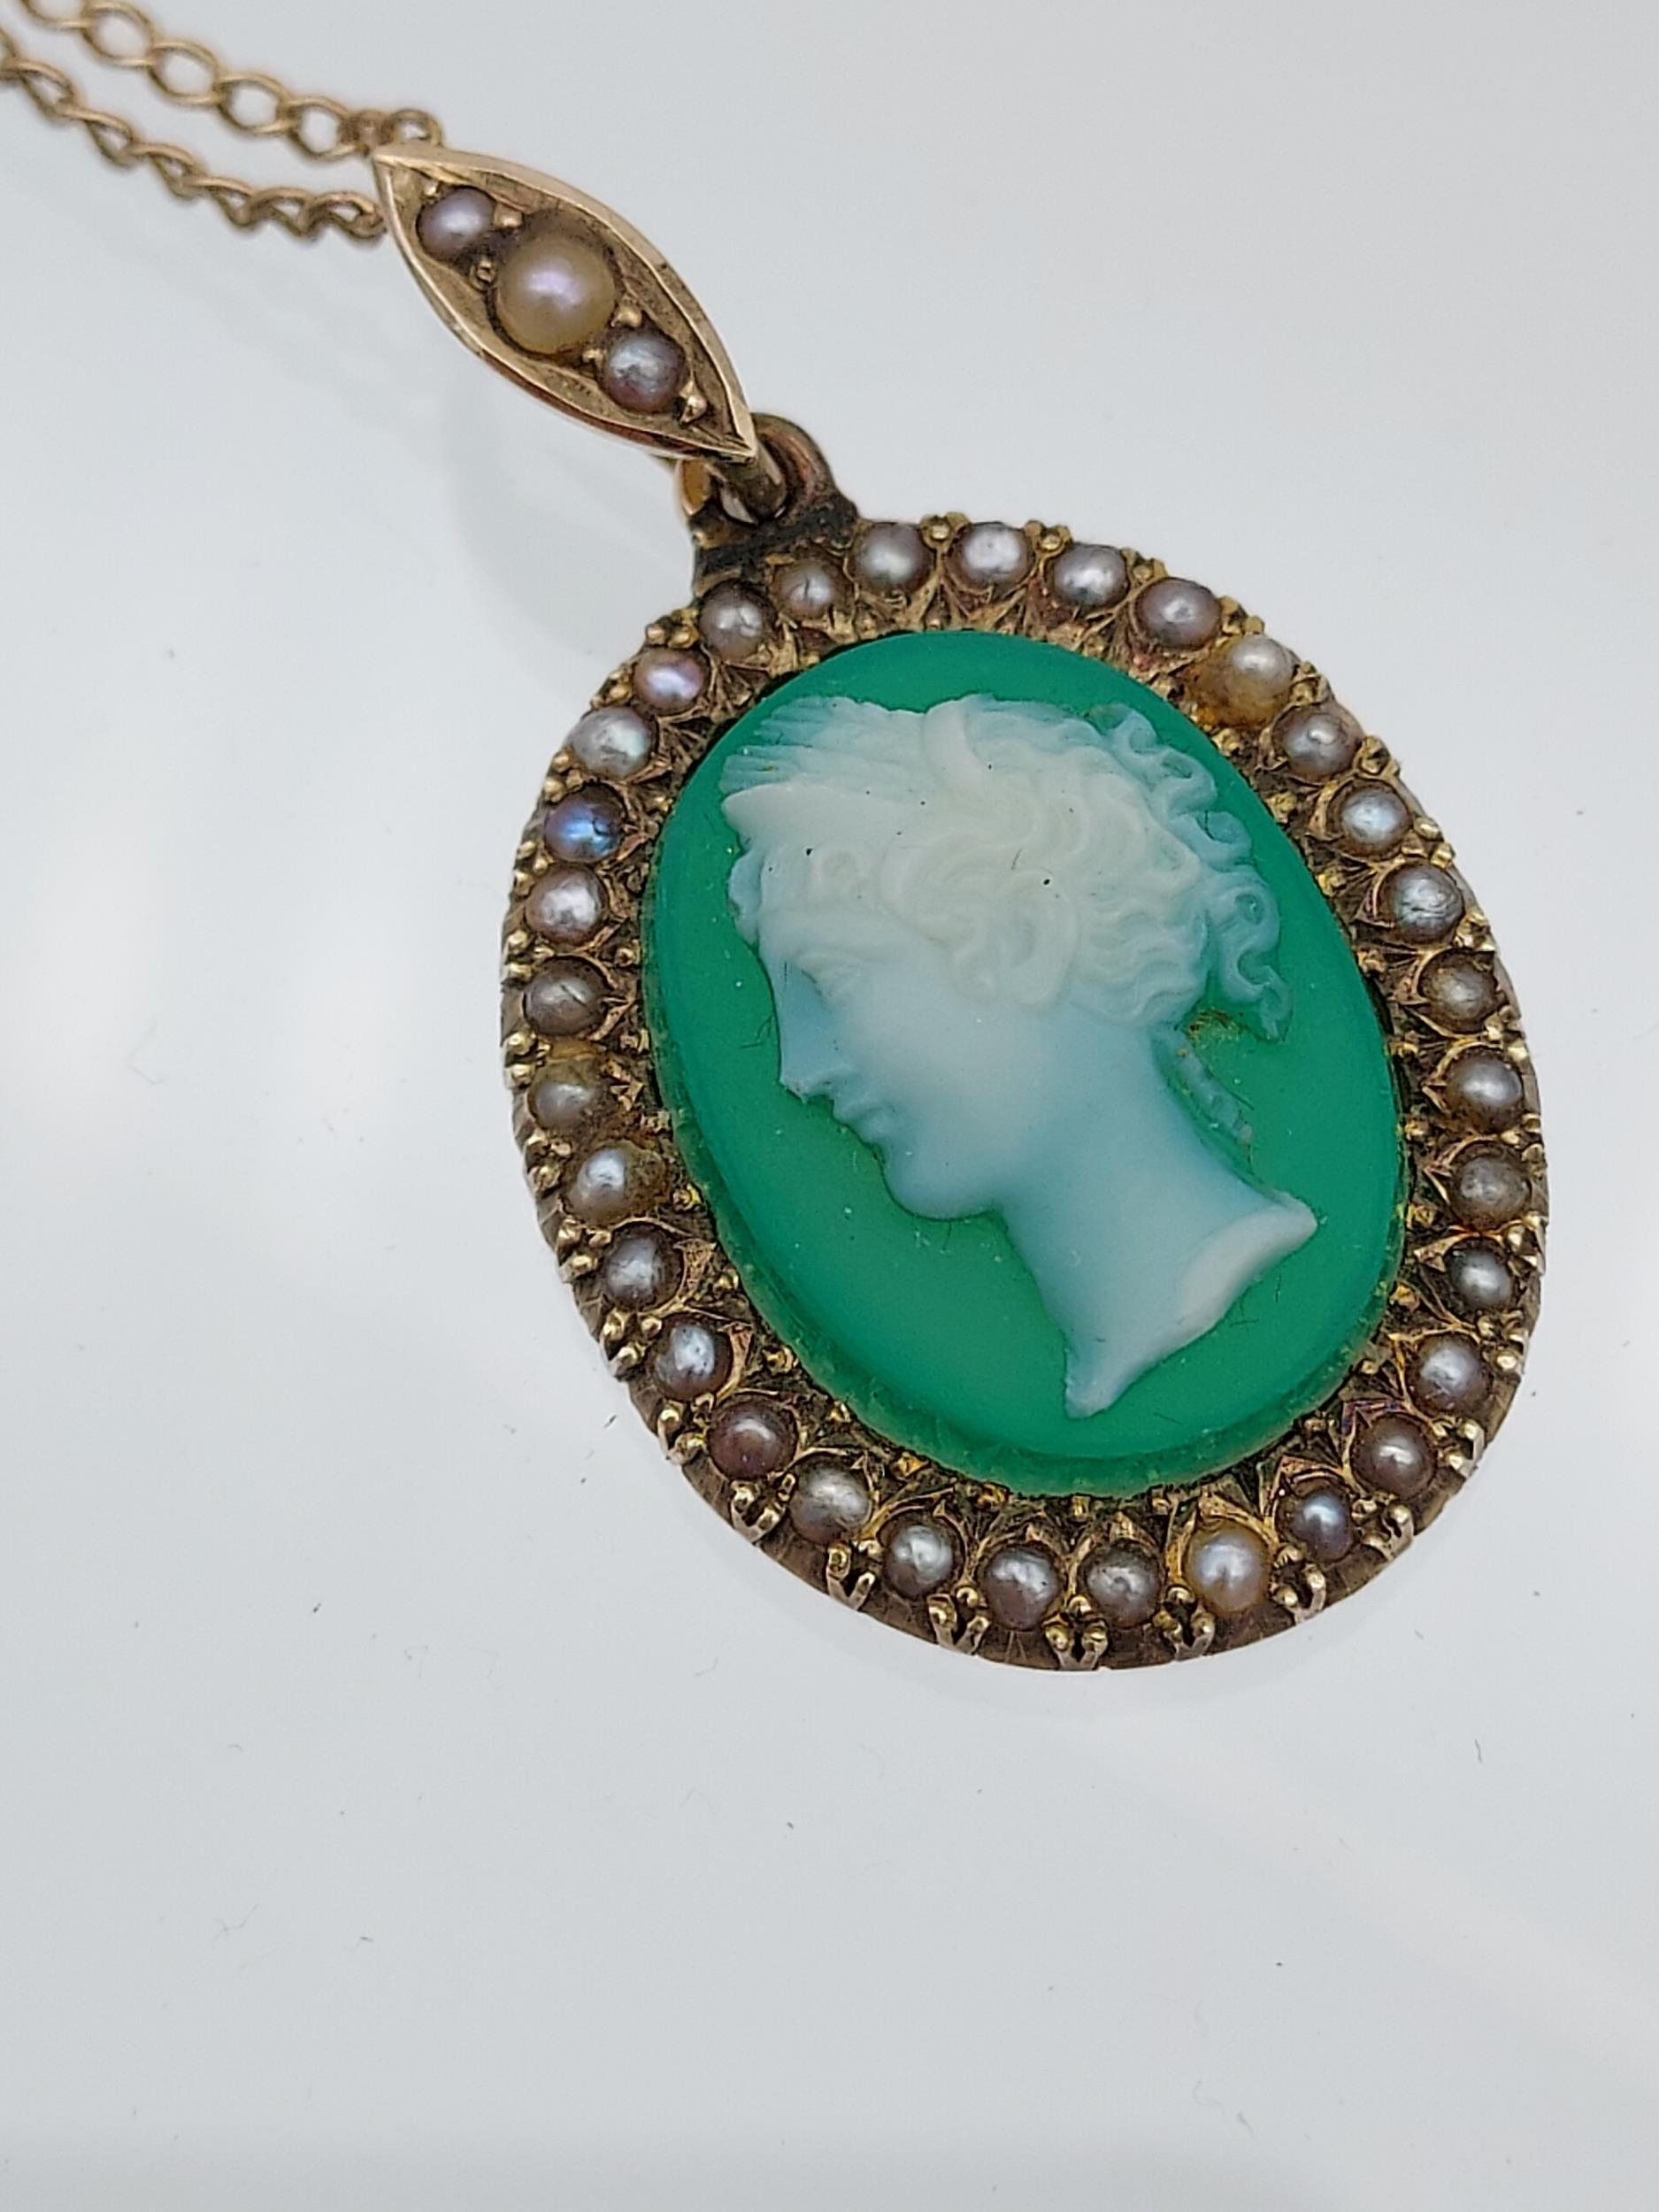 An early 1900's 9ct gold necklace with 9ct gold green cameo and seed pearl pendant.